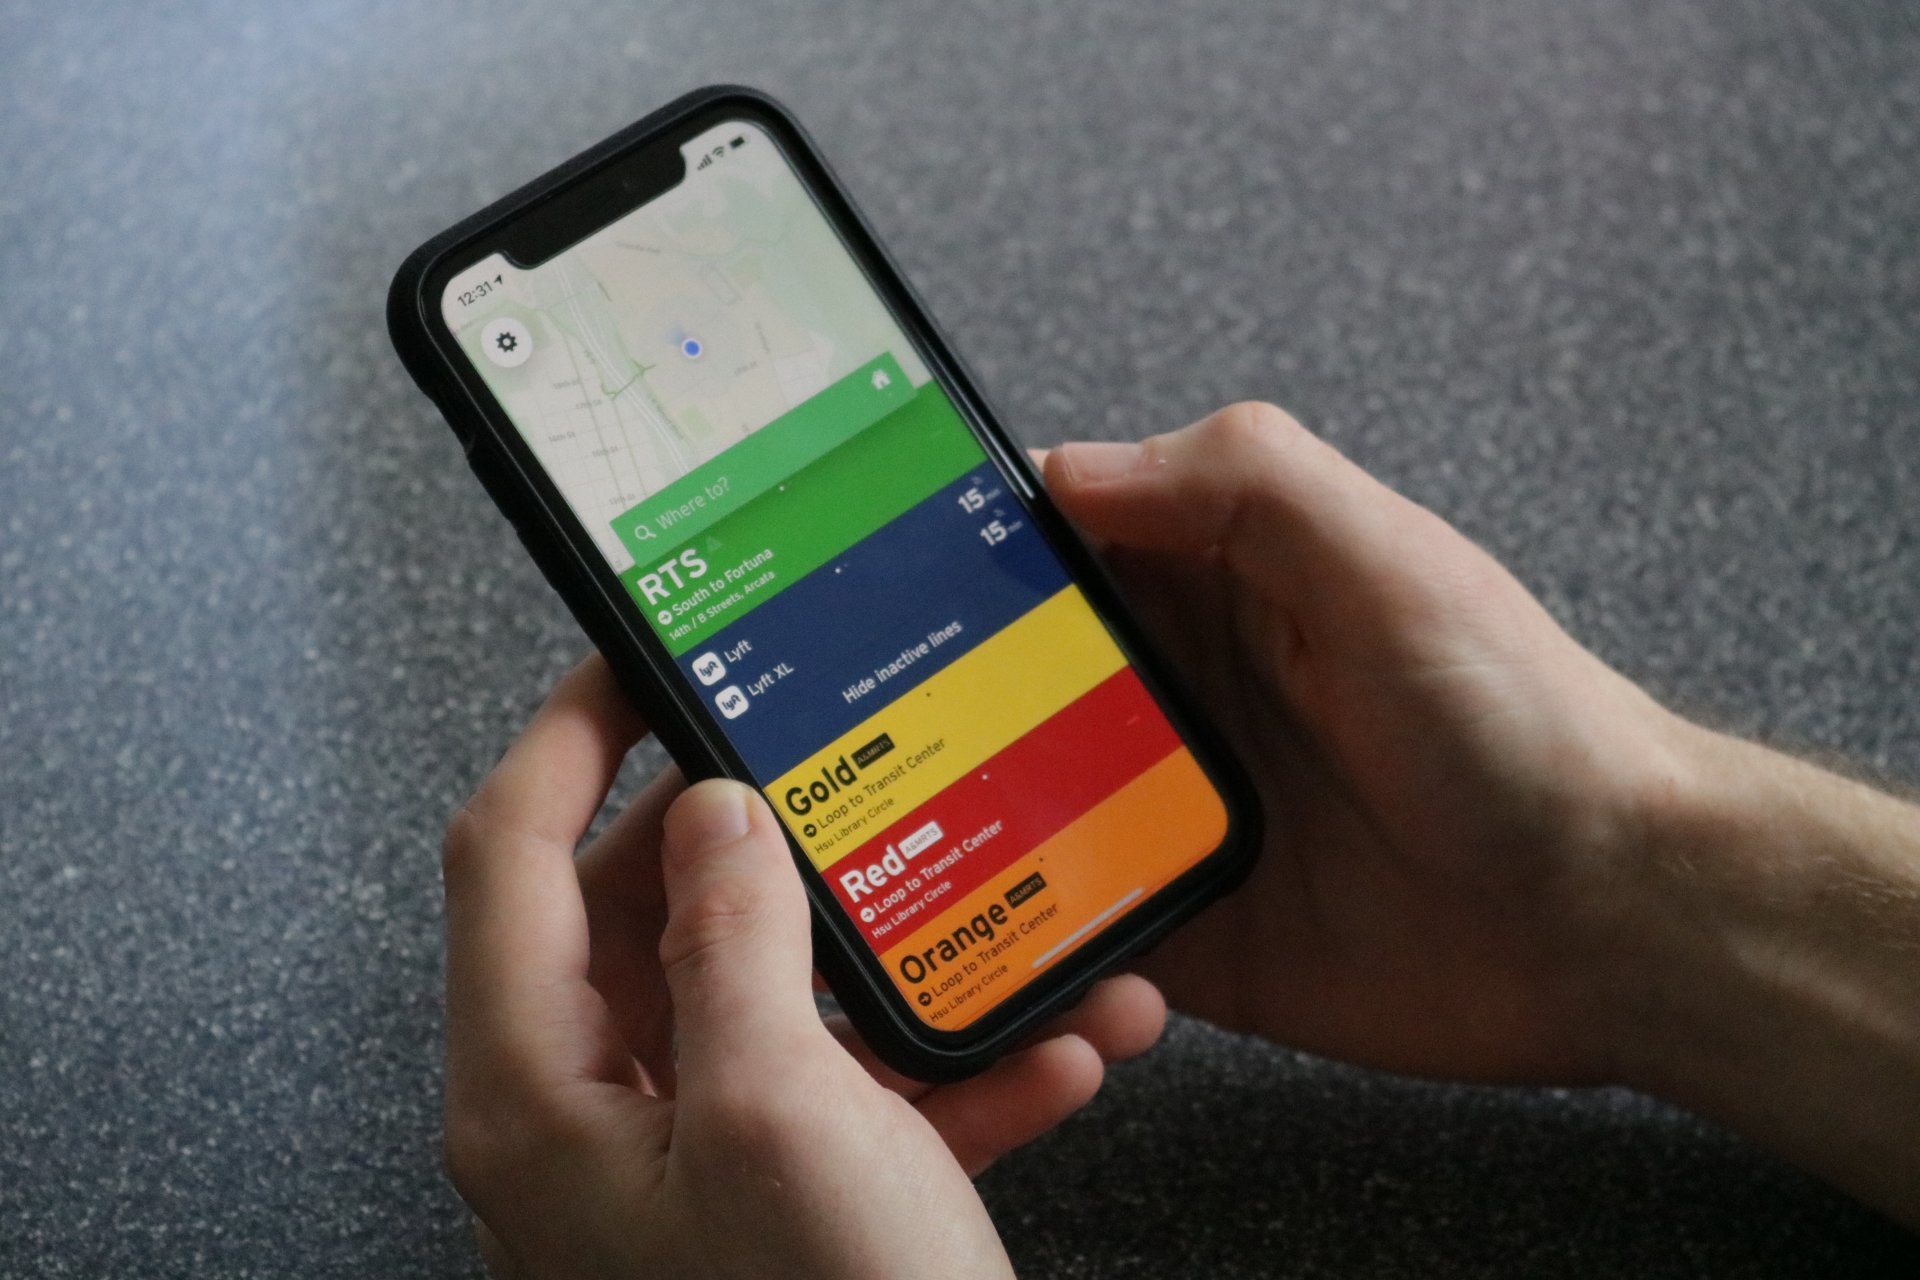 The Transit app on an iPhone. The Transit app shows you nearby bus routes and schedules with live updates.   Photo by Chelsea Wood